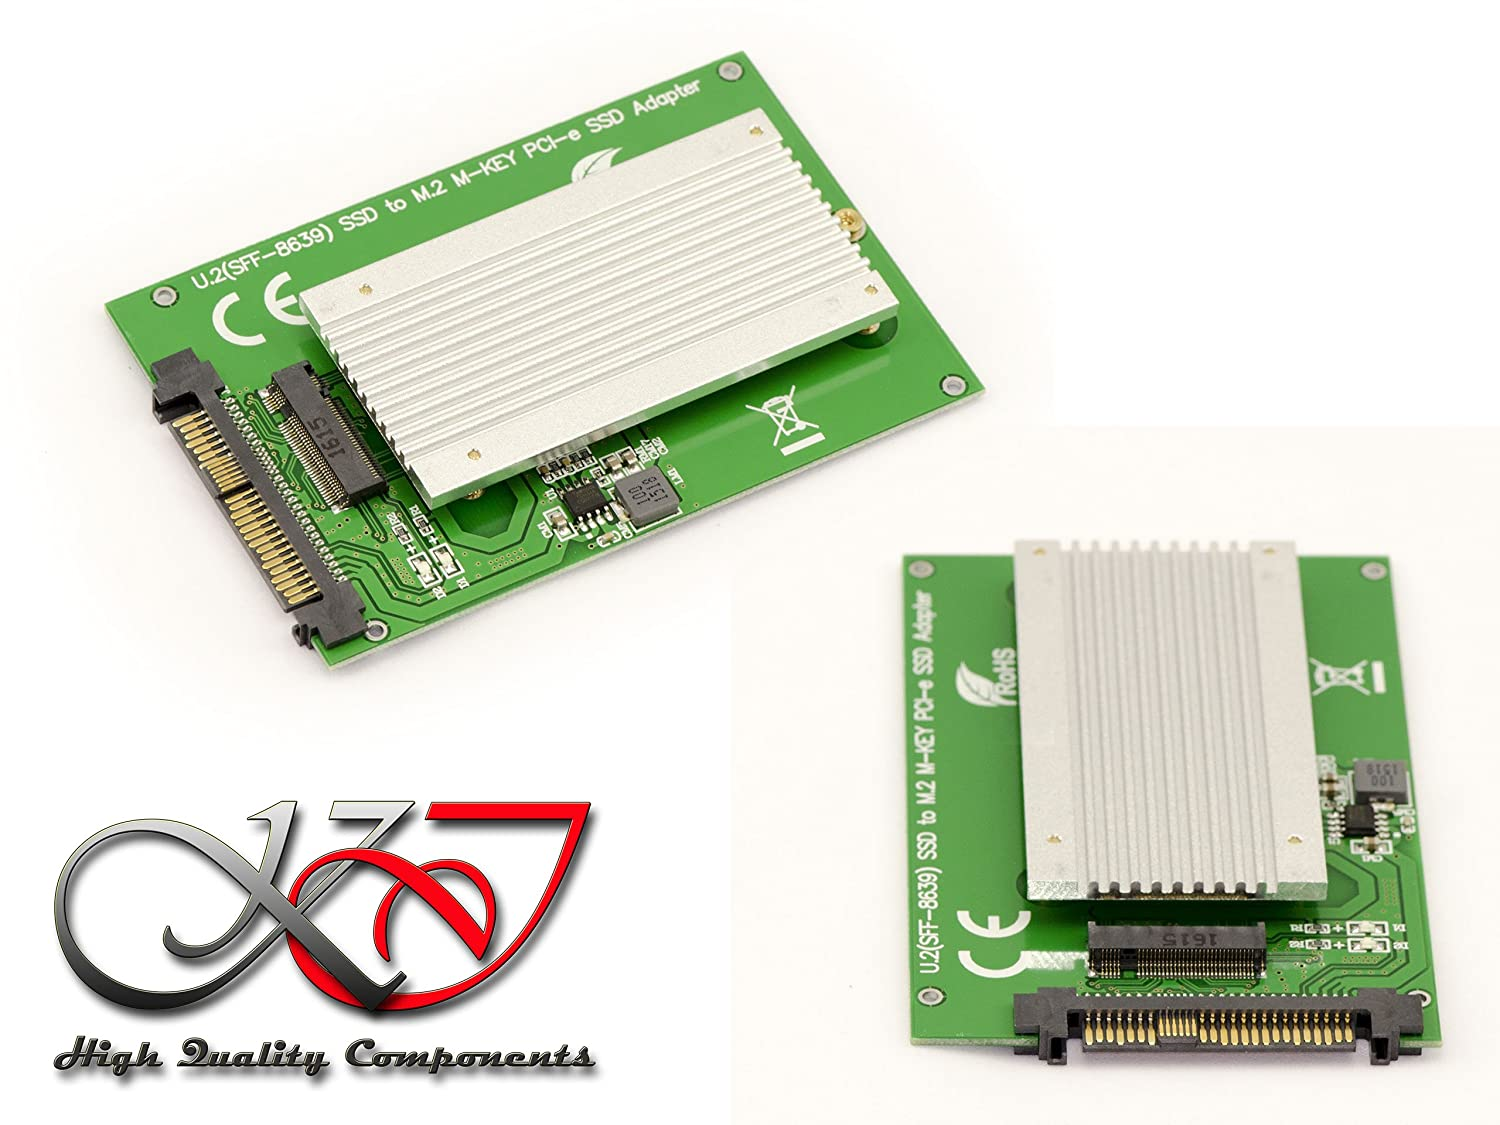 Kalea-Informatique /© Adapter Converter M2 PCIe M Key to U2 for Mounting an M.2 Gen 3.0 NVMe SSD instead of a U.2 SSD With Heater 68Pin SFF-8639